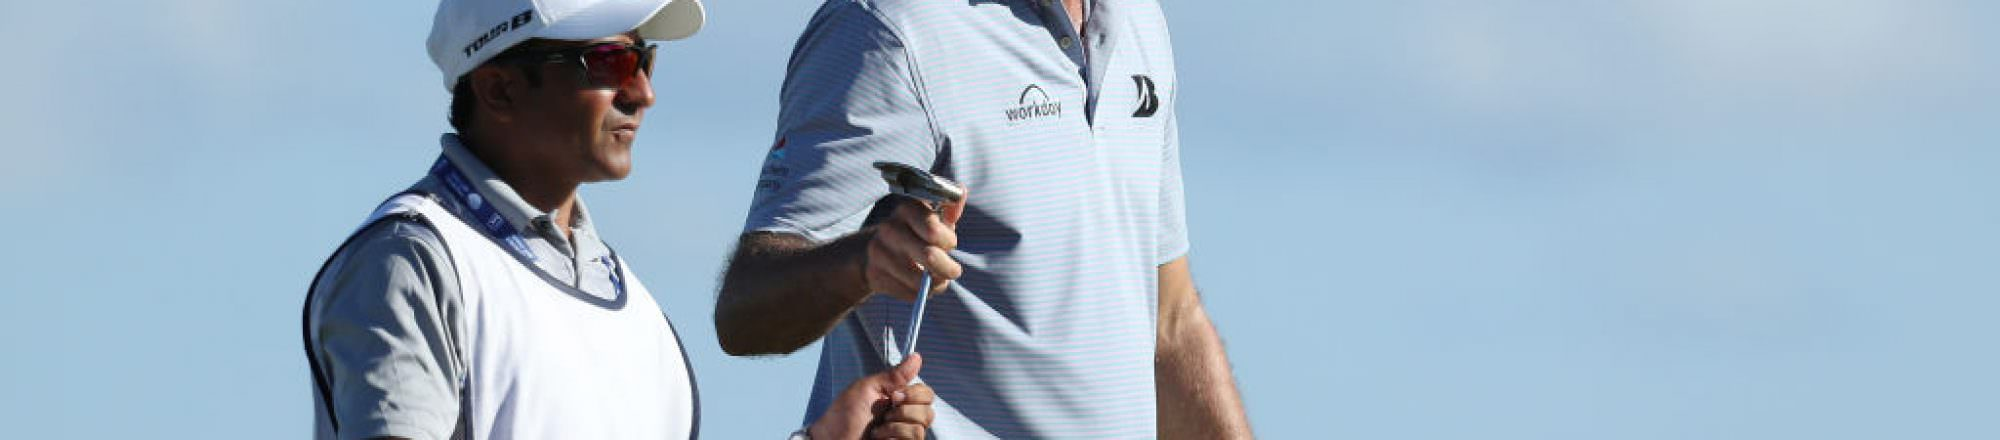 How much should Kuchar have paid his caddie?